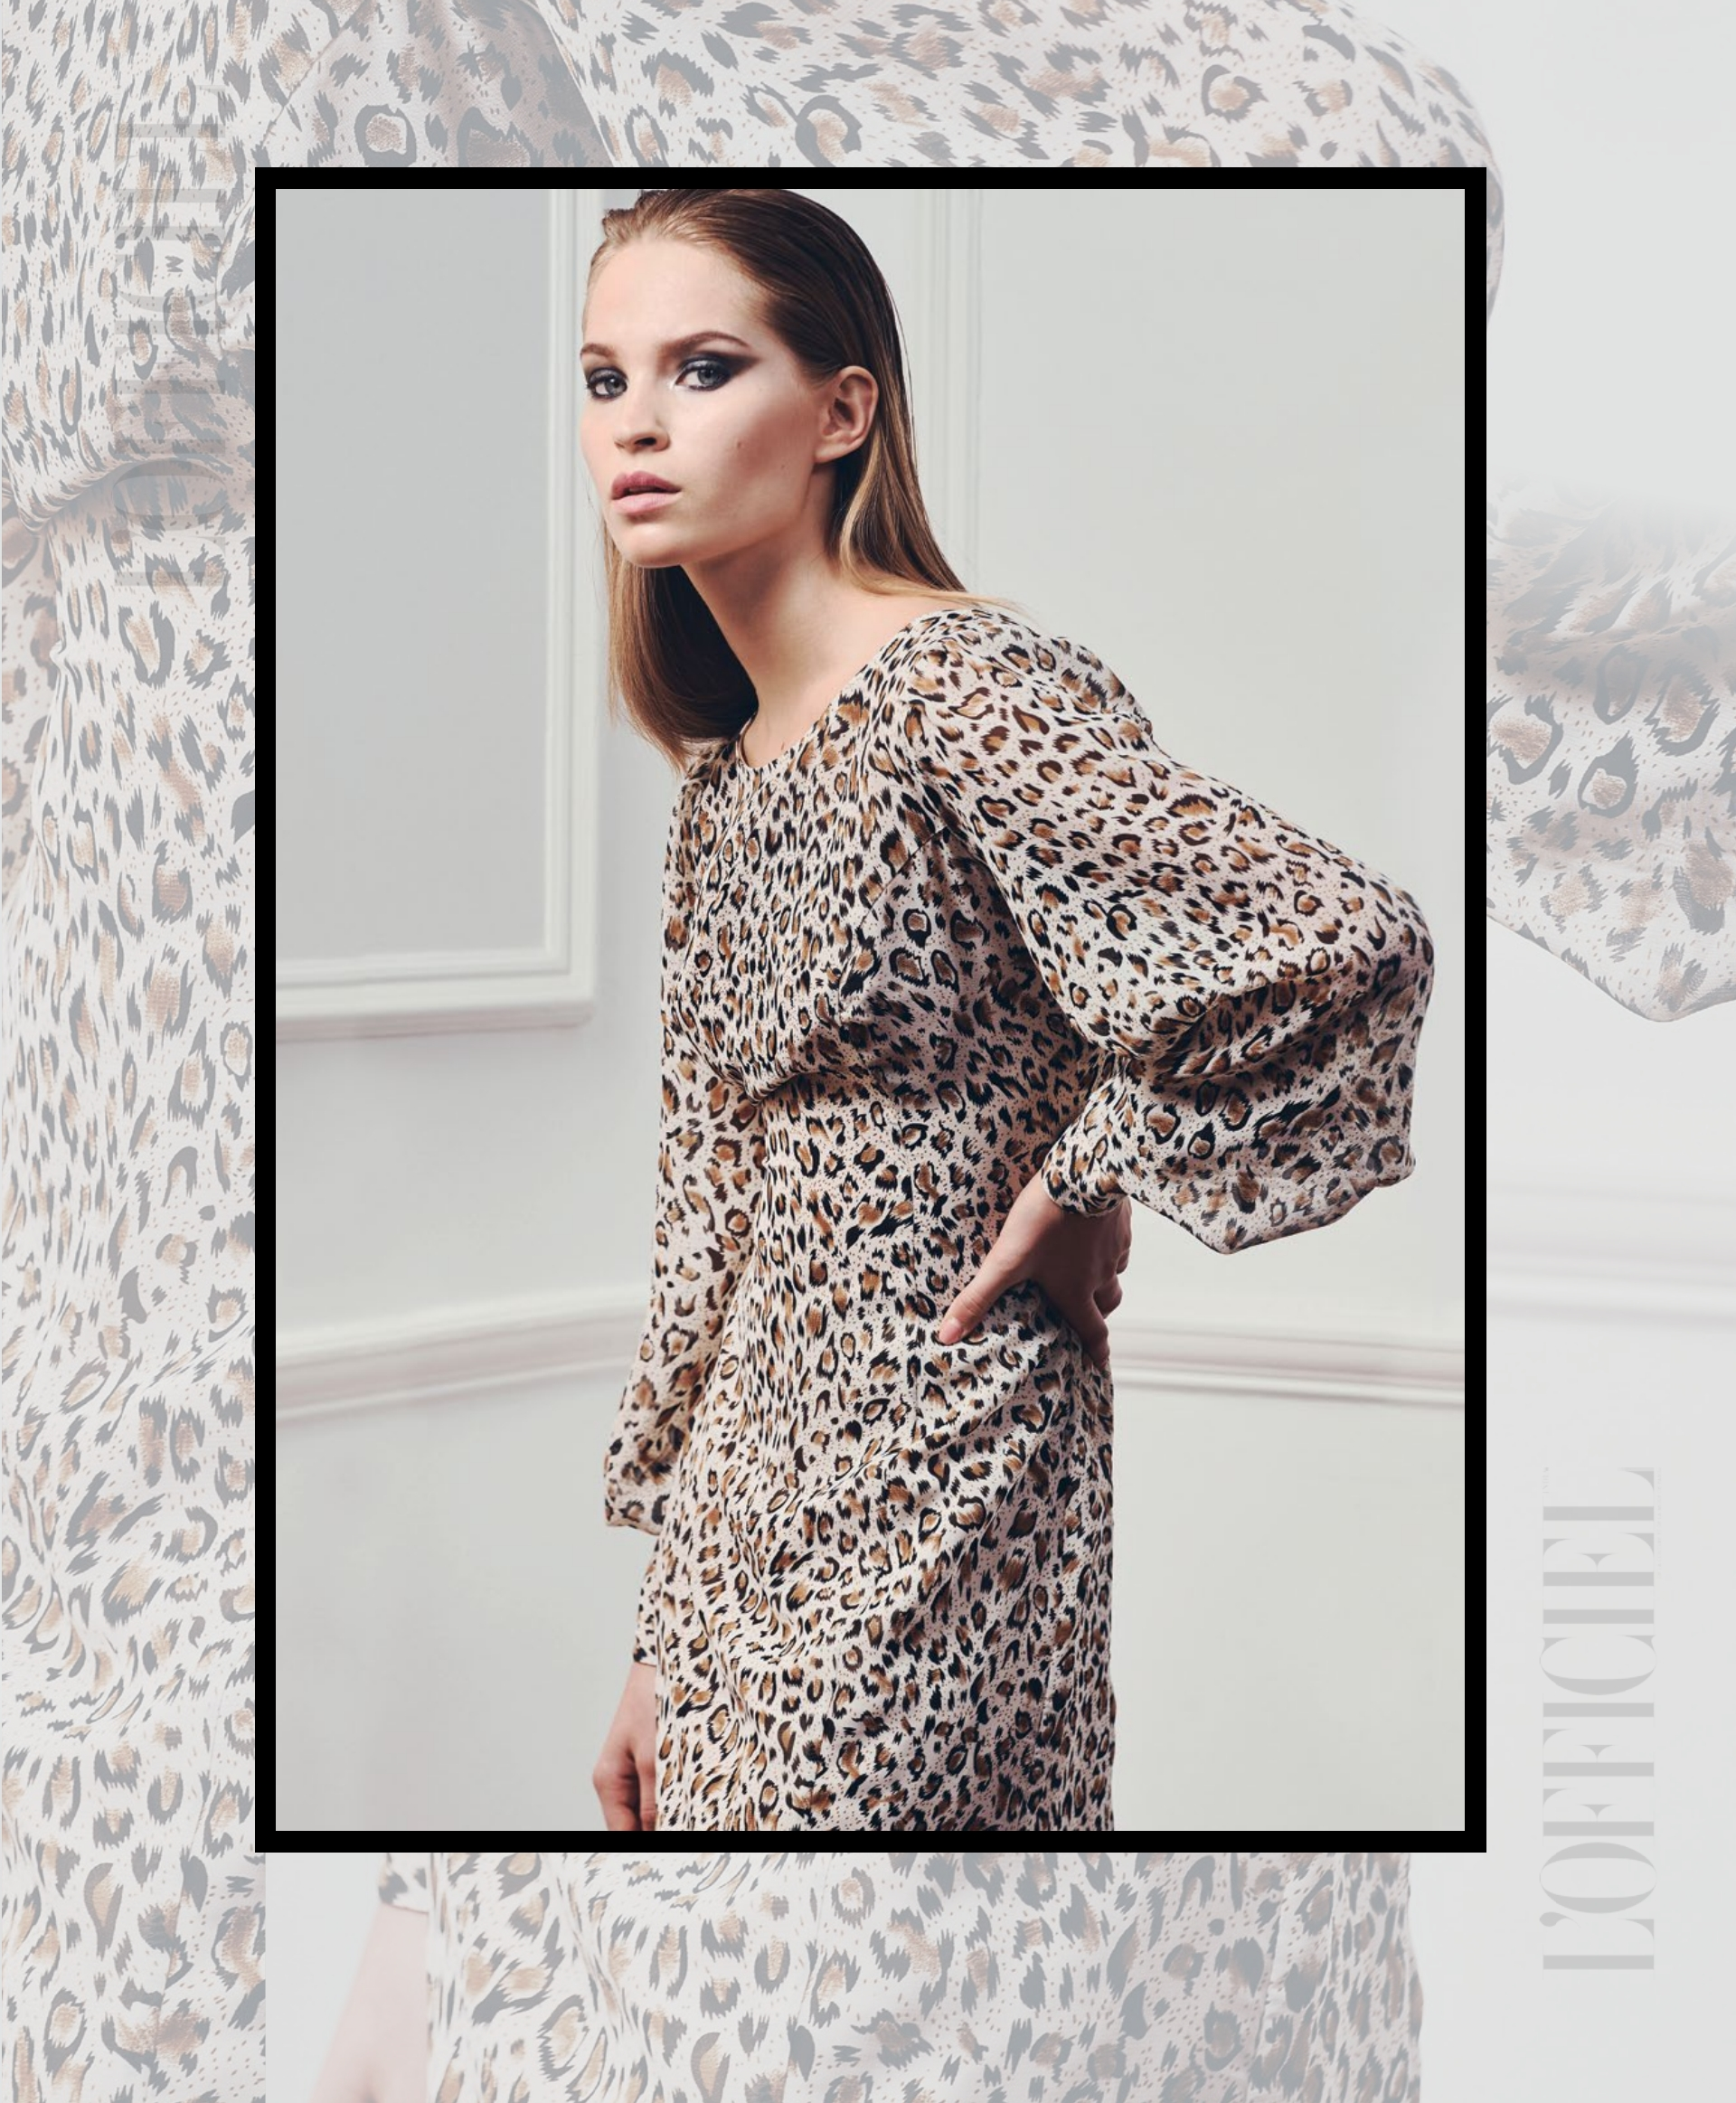 L'Officiel India Magazine features fashion designer Tomasz Kociuba animal print evening dress